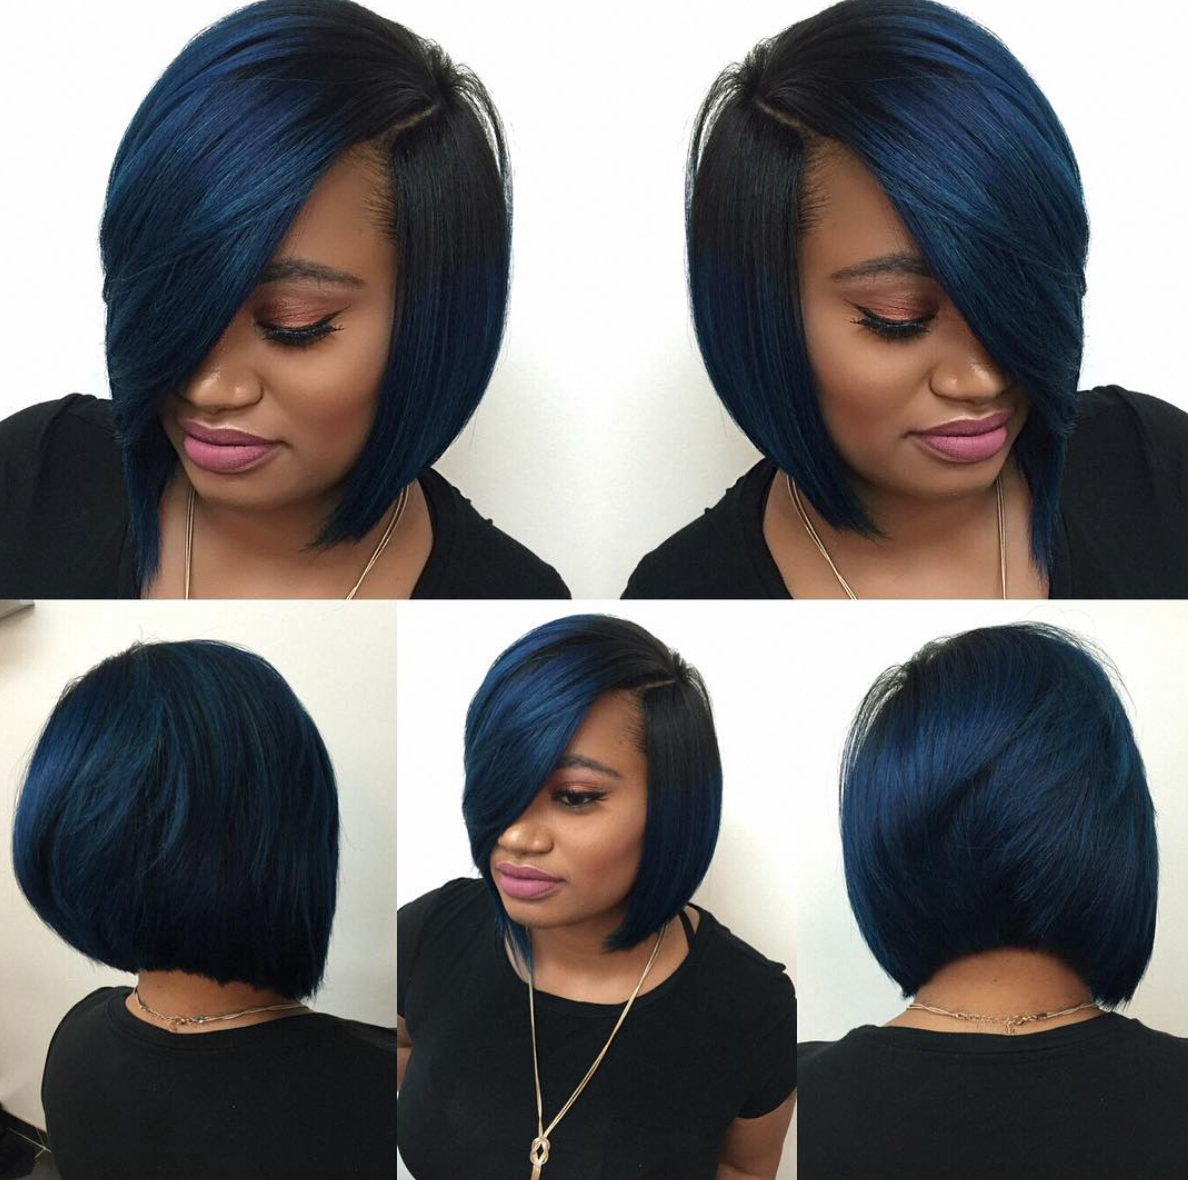 pin by doretha barnes on wigs in 2019 | short hair styles